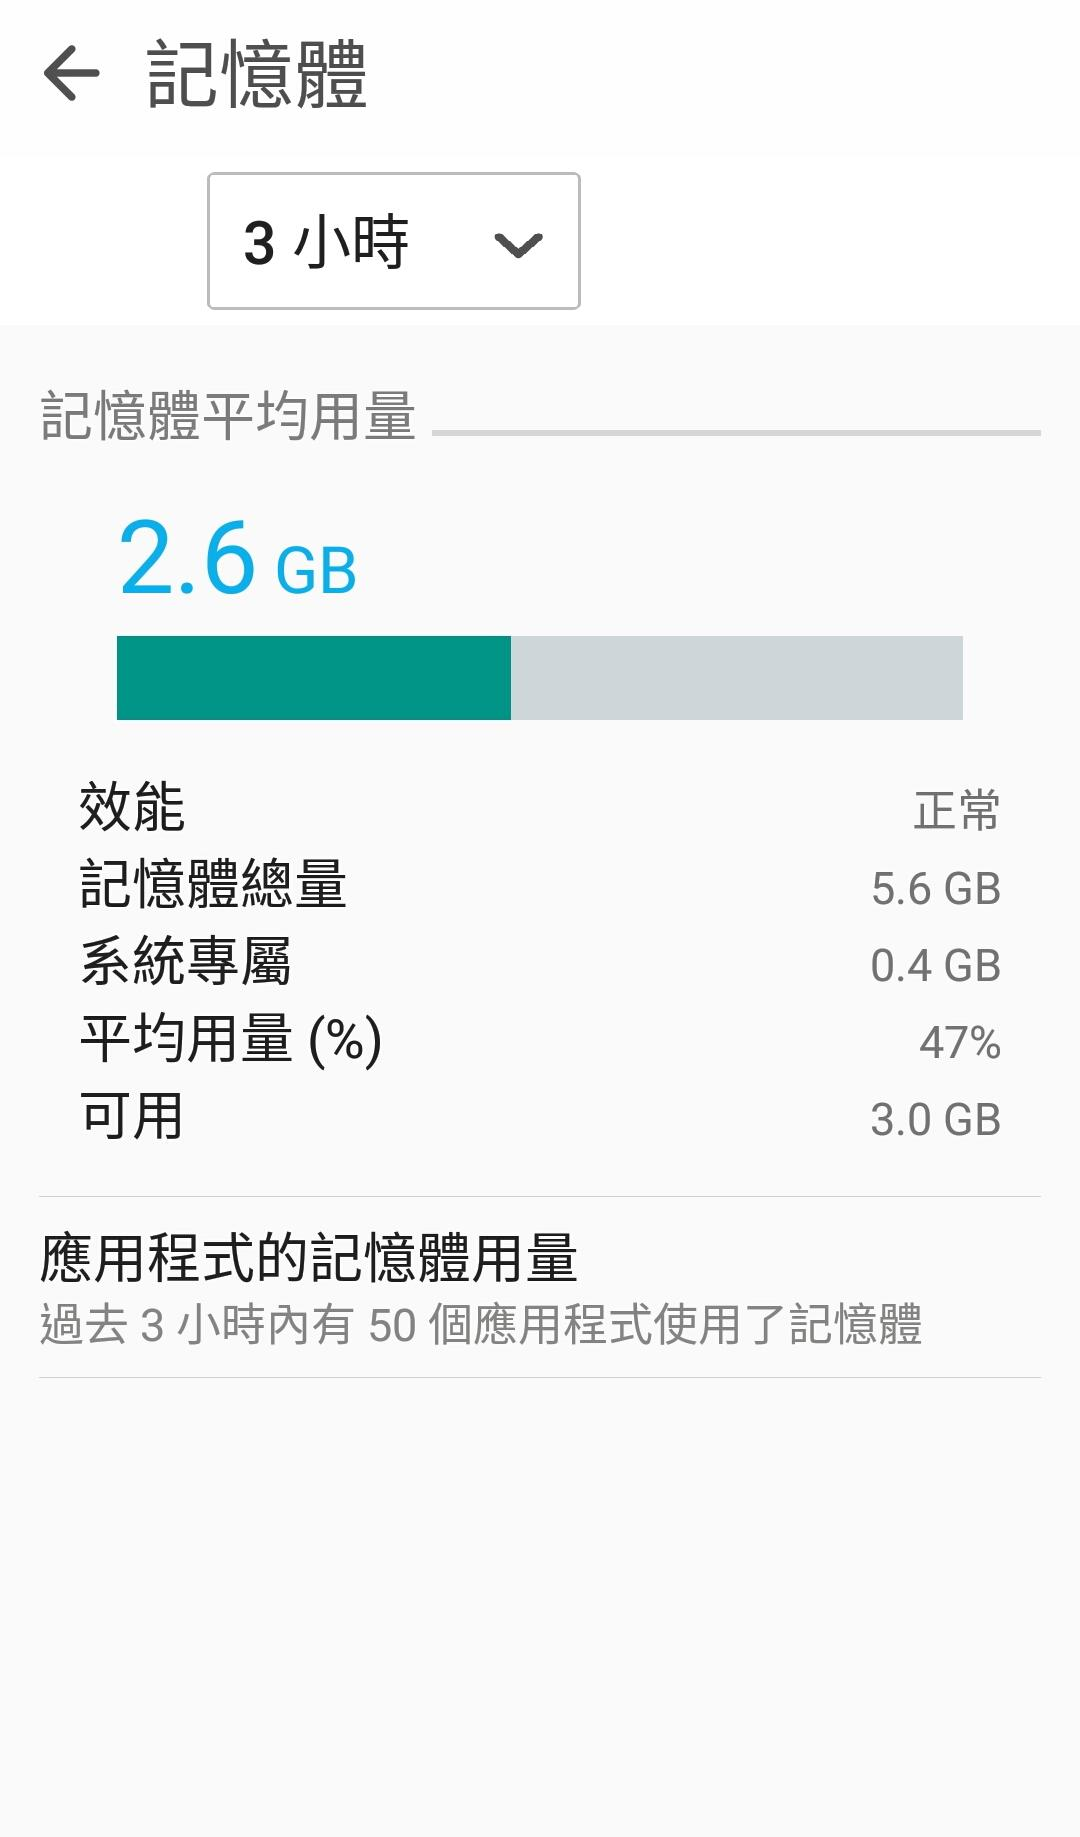 質感再升級的 Zenfone 3 冰河銀 Deluxe 6GB/64G 開箱 - XFastest - Screenshot_20161006-090616.jpg